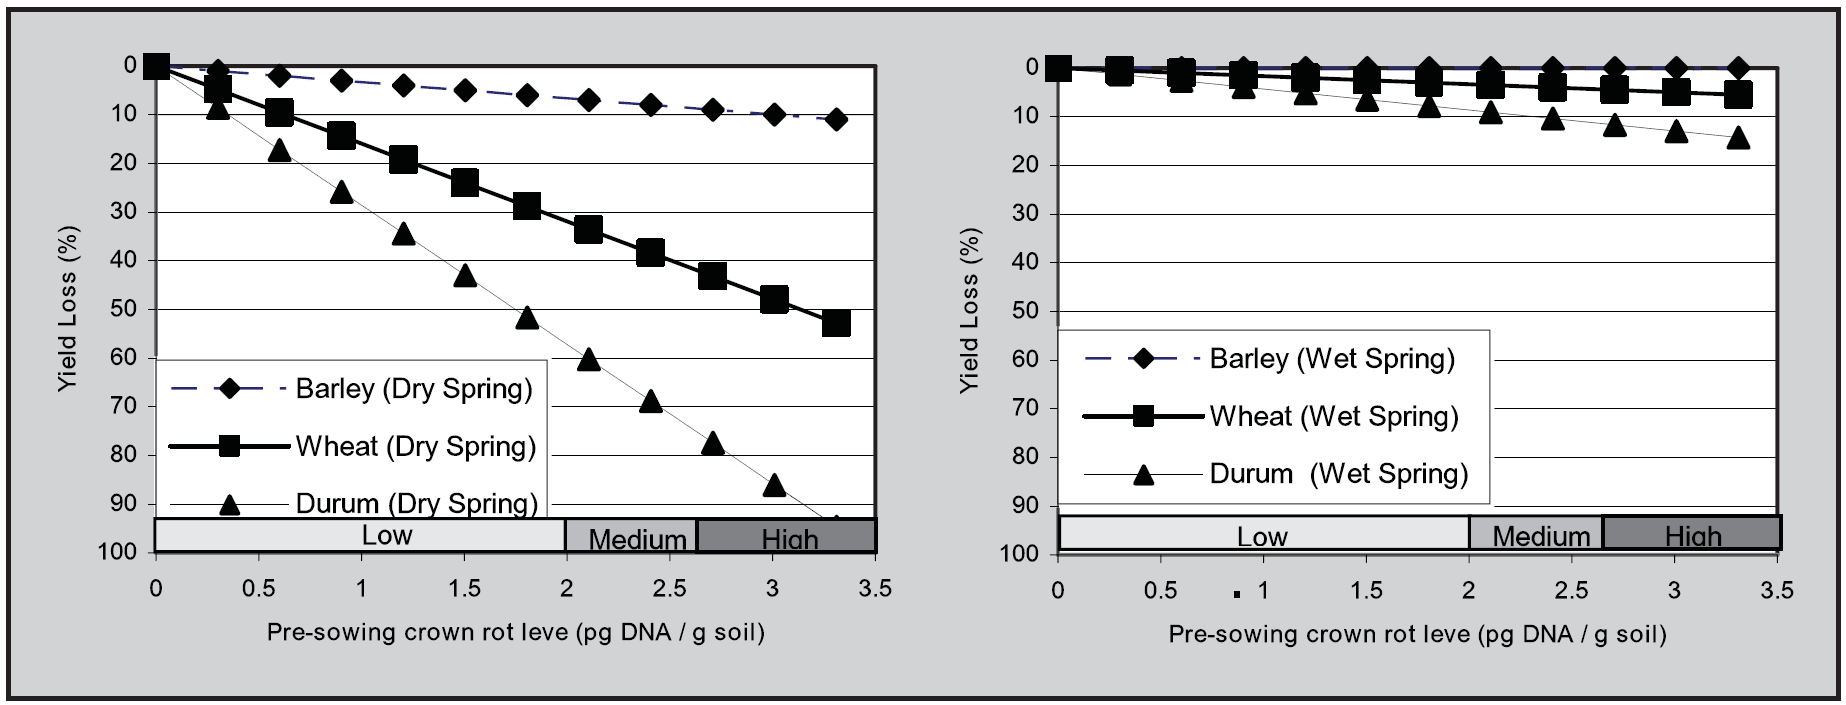 Figure 2. A graphical representation of the relative effect of increasing pre-sowing crown rot inoculum levels, as determined using PredictaB, on grain yield loss (%) in three cereals in seasons with below average combined September and October rainfall (left) and above average rainfall for the same period (right) using 26 data sets collected in Victoria and South Australia during the years 2005 to 2010 (Hollaway et al. 2013).